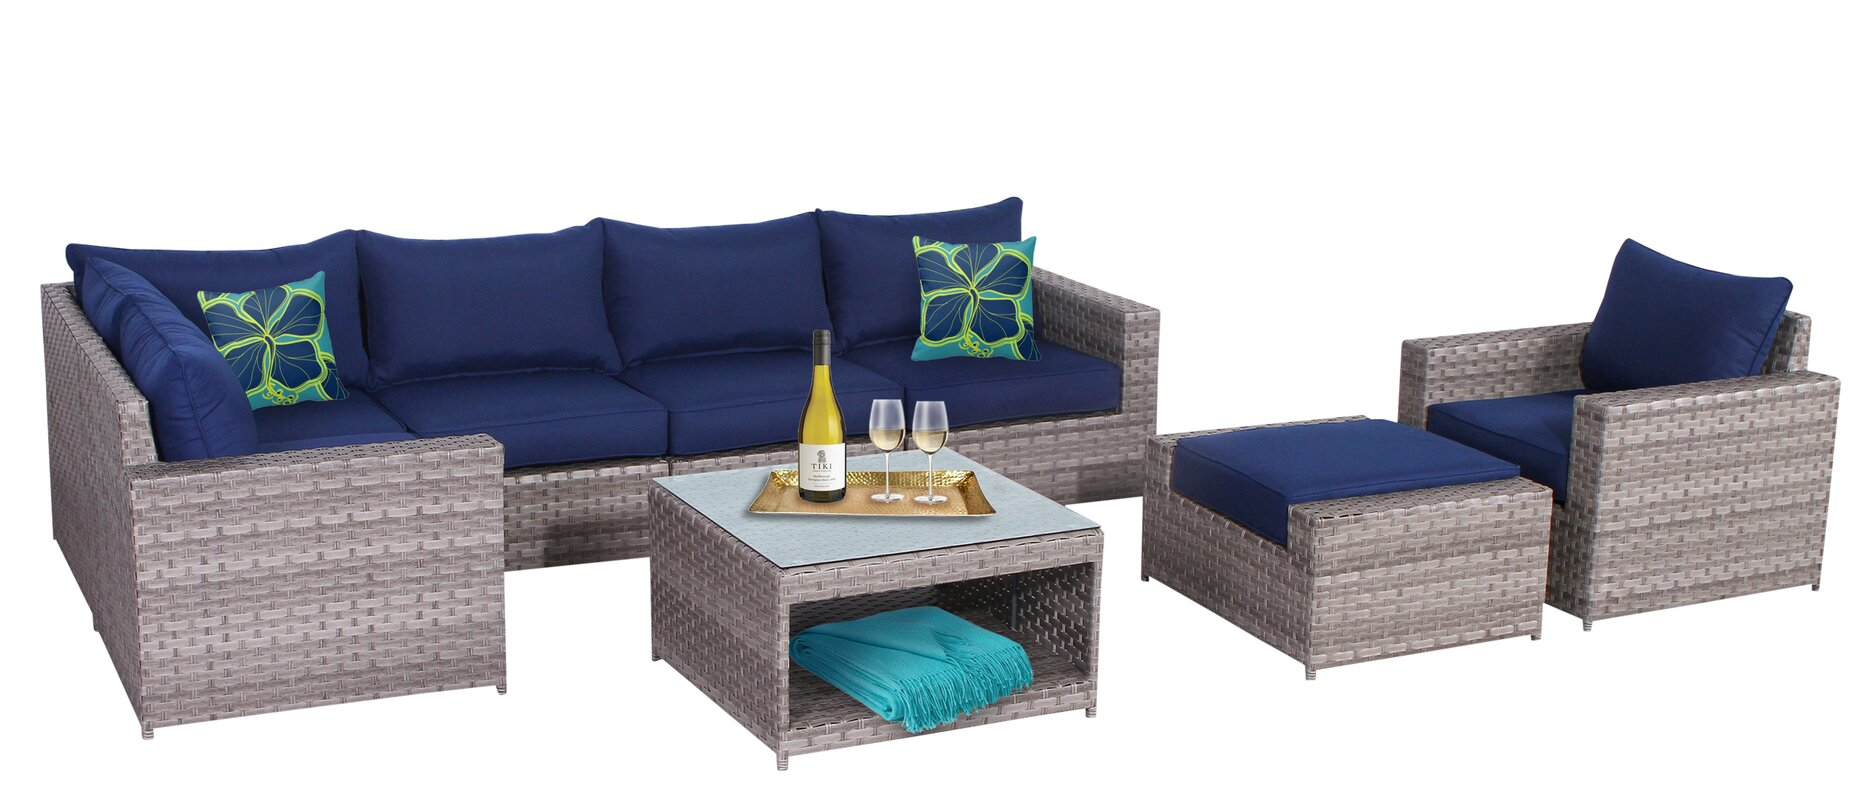 Longshore Tides Burkley 8 Piece Sectional Set with Cushions